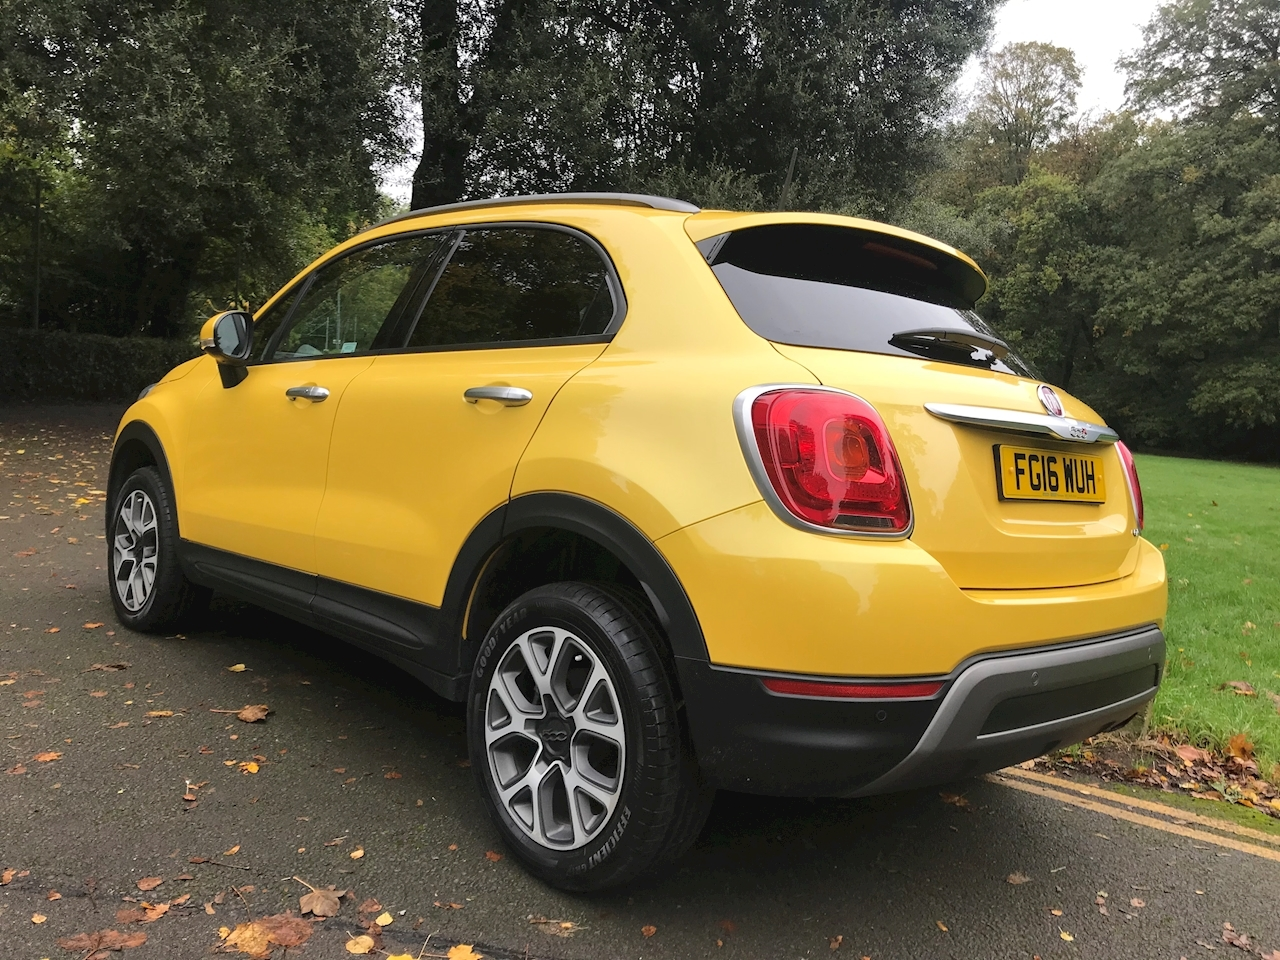 Fiat 500X 1.4 Multiair 170BHP Cross 4x4 2016(16) - Large 3